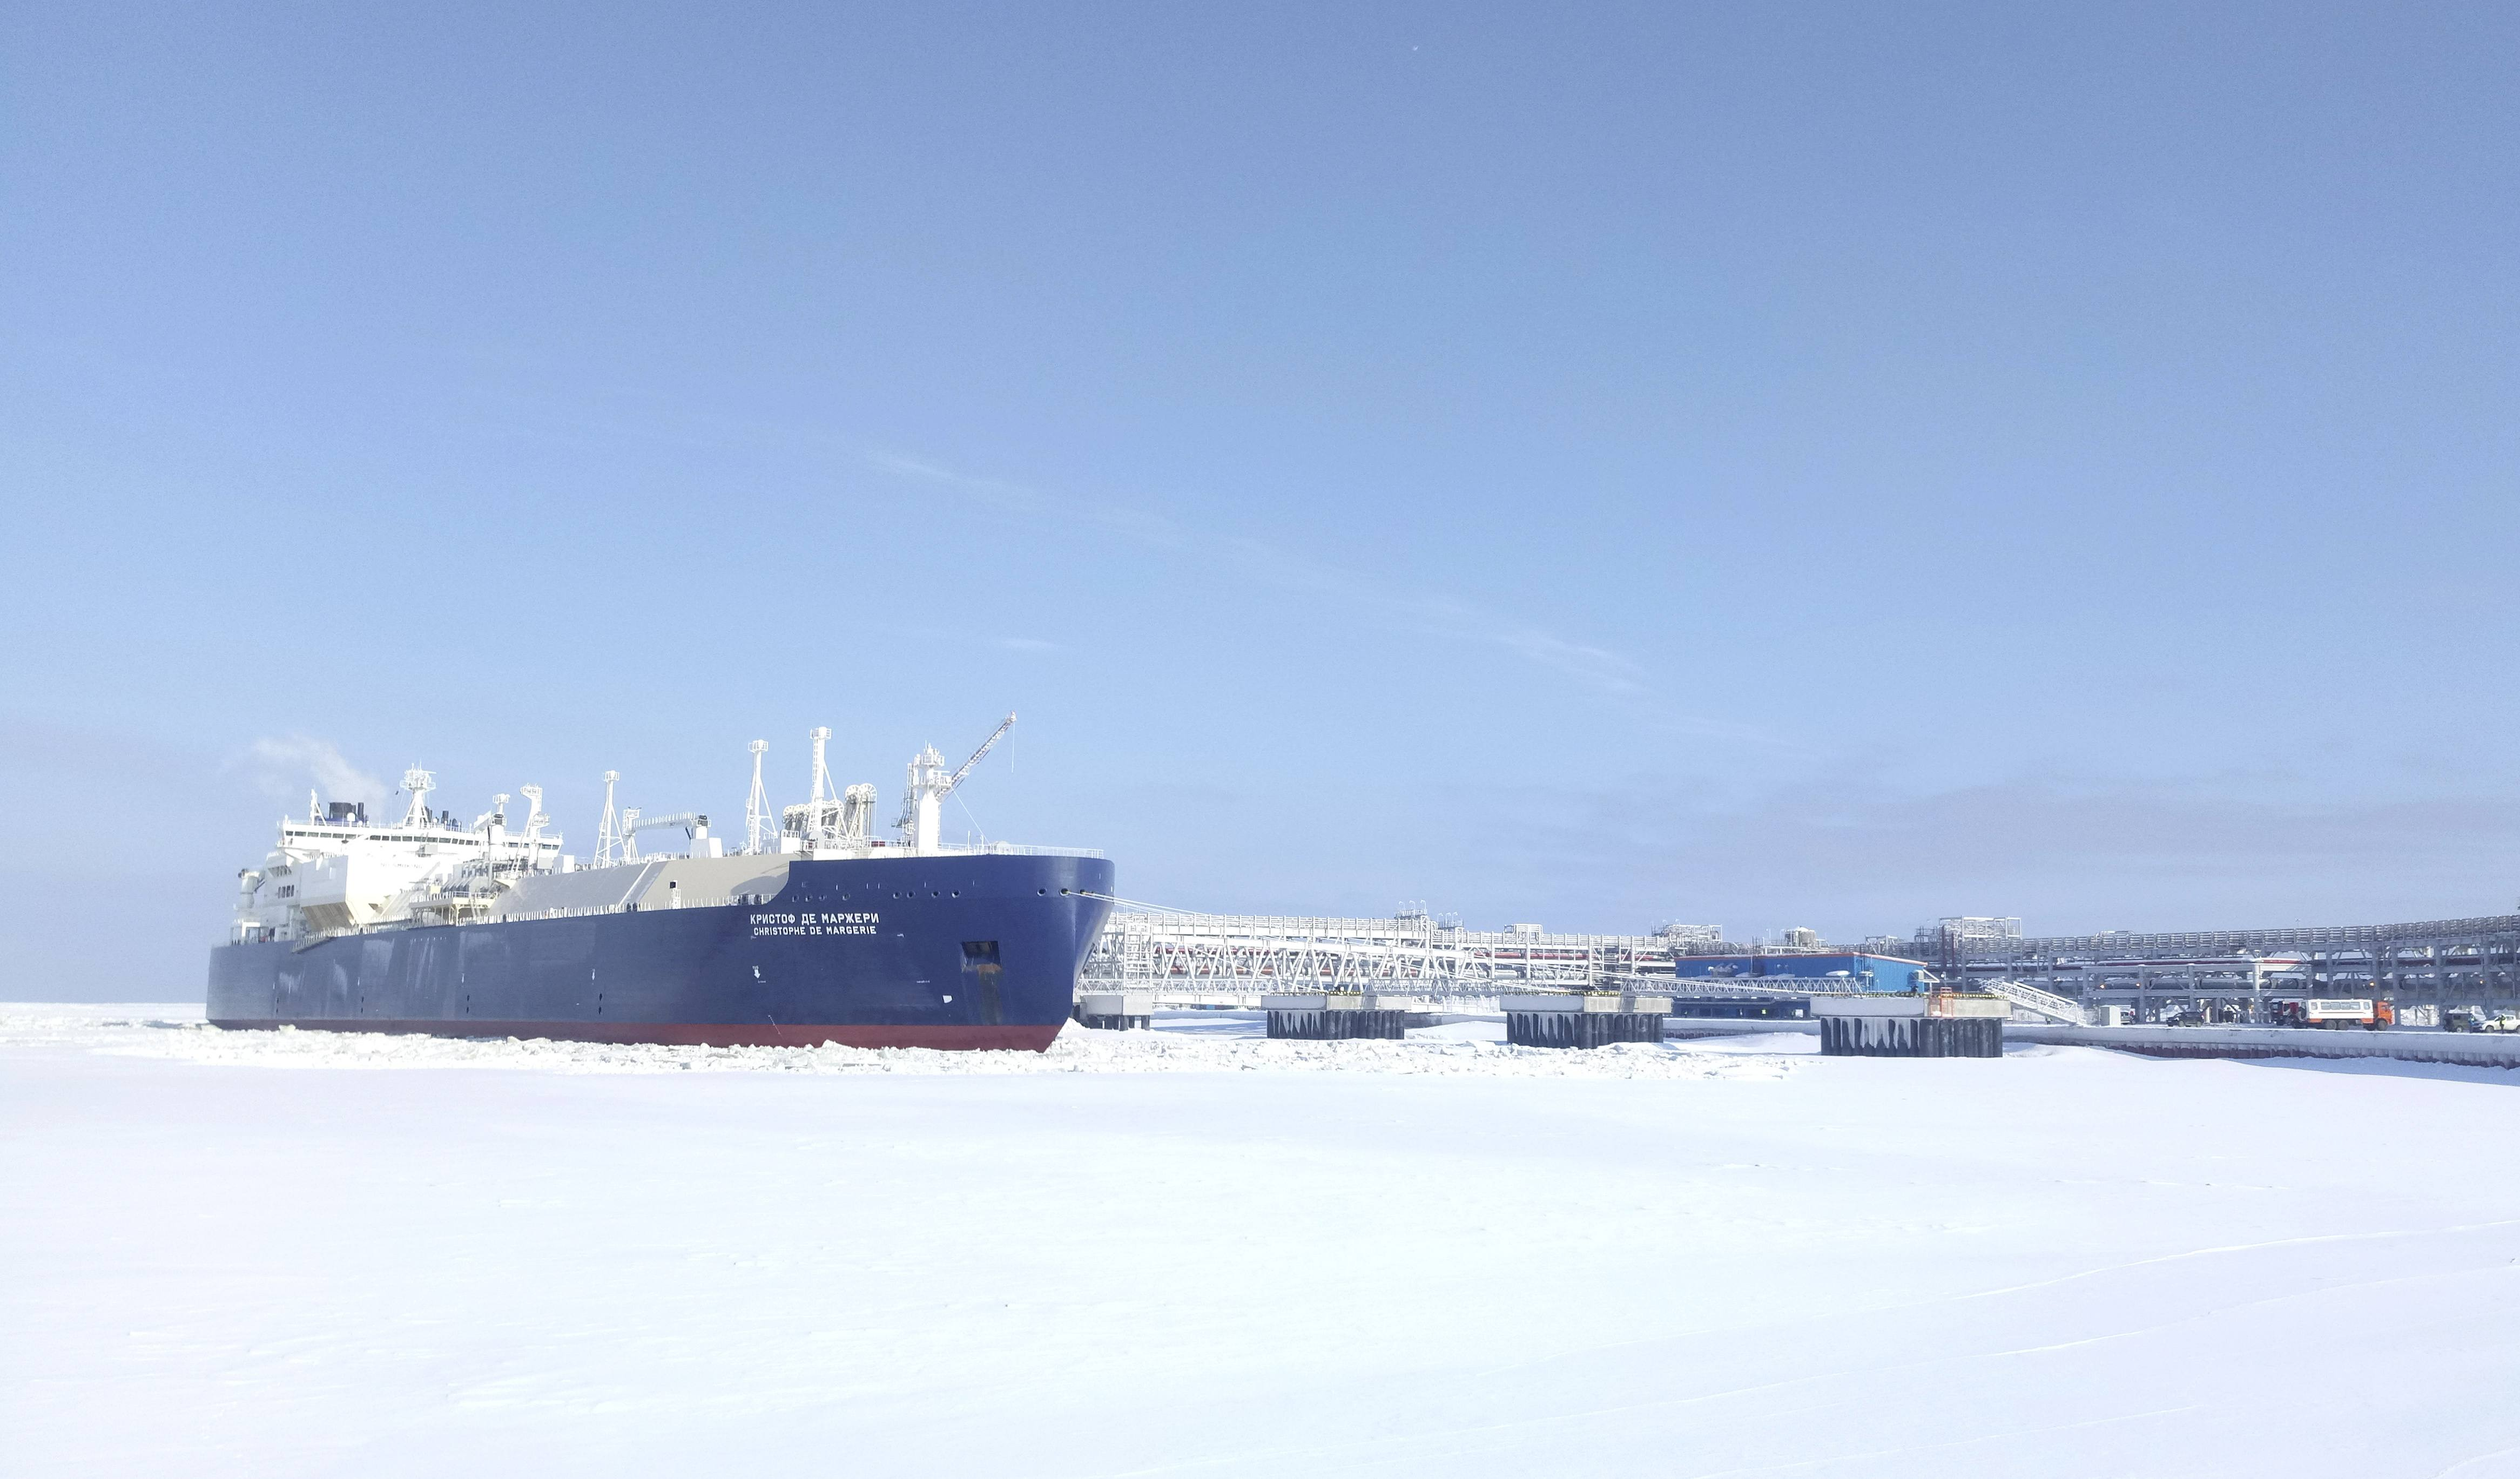 Northern Sea Route sees more than 80 percent increase in goods shipped so far this year